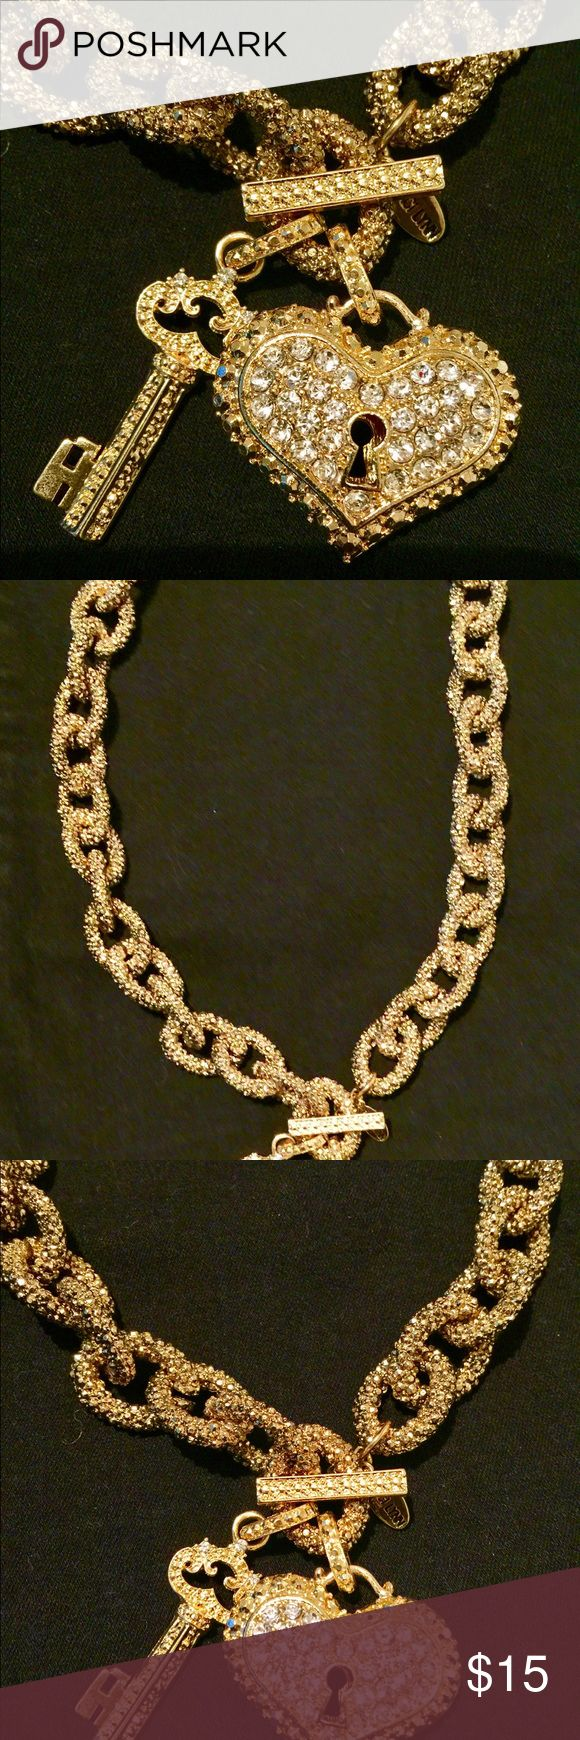 Traci Lynn gold chain choker with charms Gold encrusted link chain choker with a faux diamond encrusted heart and key. Heart shaped earrings. Never worn, no flaws. Traci Lynn Jewelry Necklaces